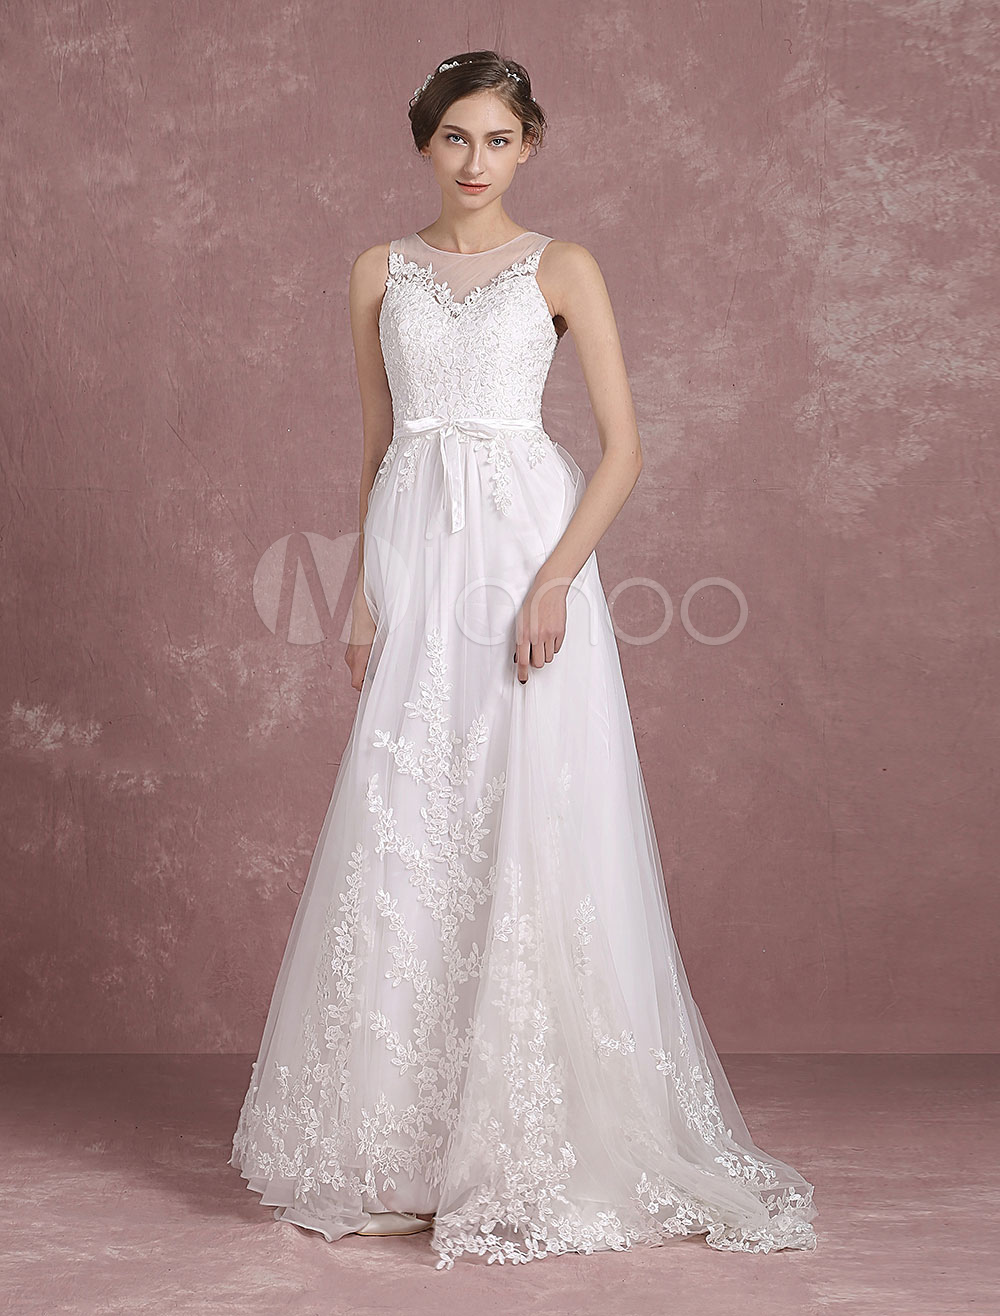 Buy Summer Wedding Dresses 2018 Lace Boho Beach Bridal Gown Sleeveless Illusion Neck Lace Applique Sweep Train Bridal Dress With Sash Milanoo for $208.79 in Milanoo store